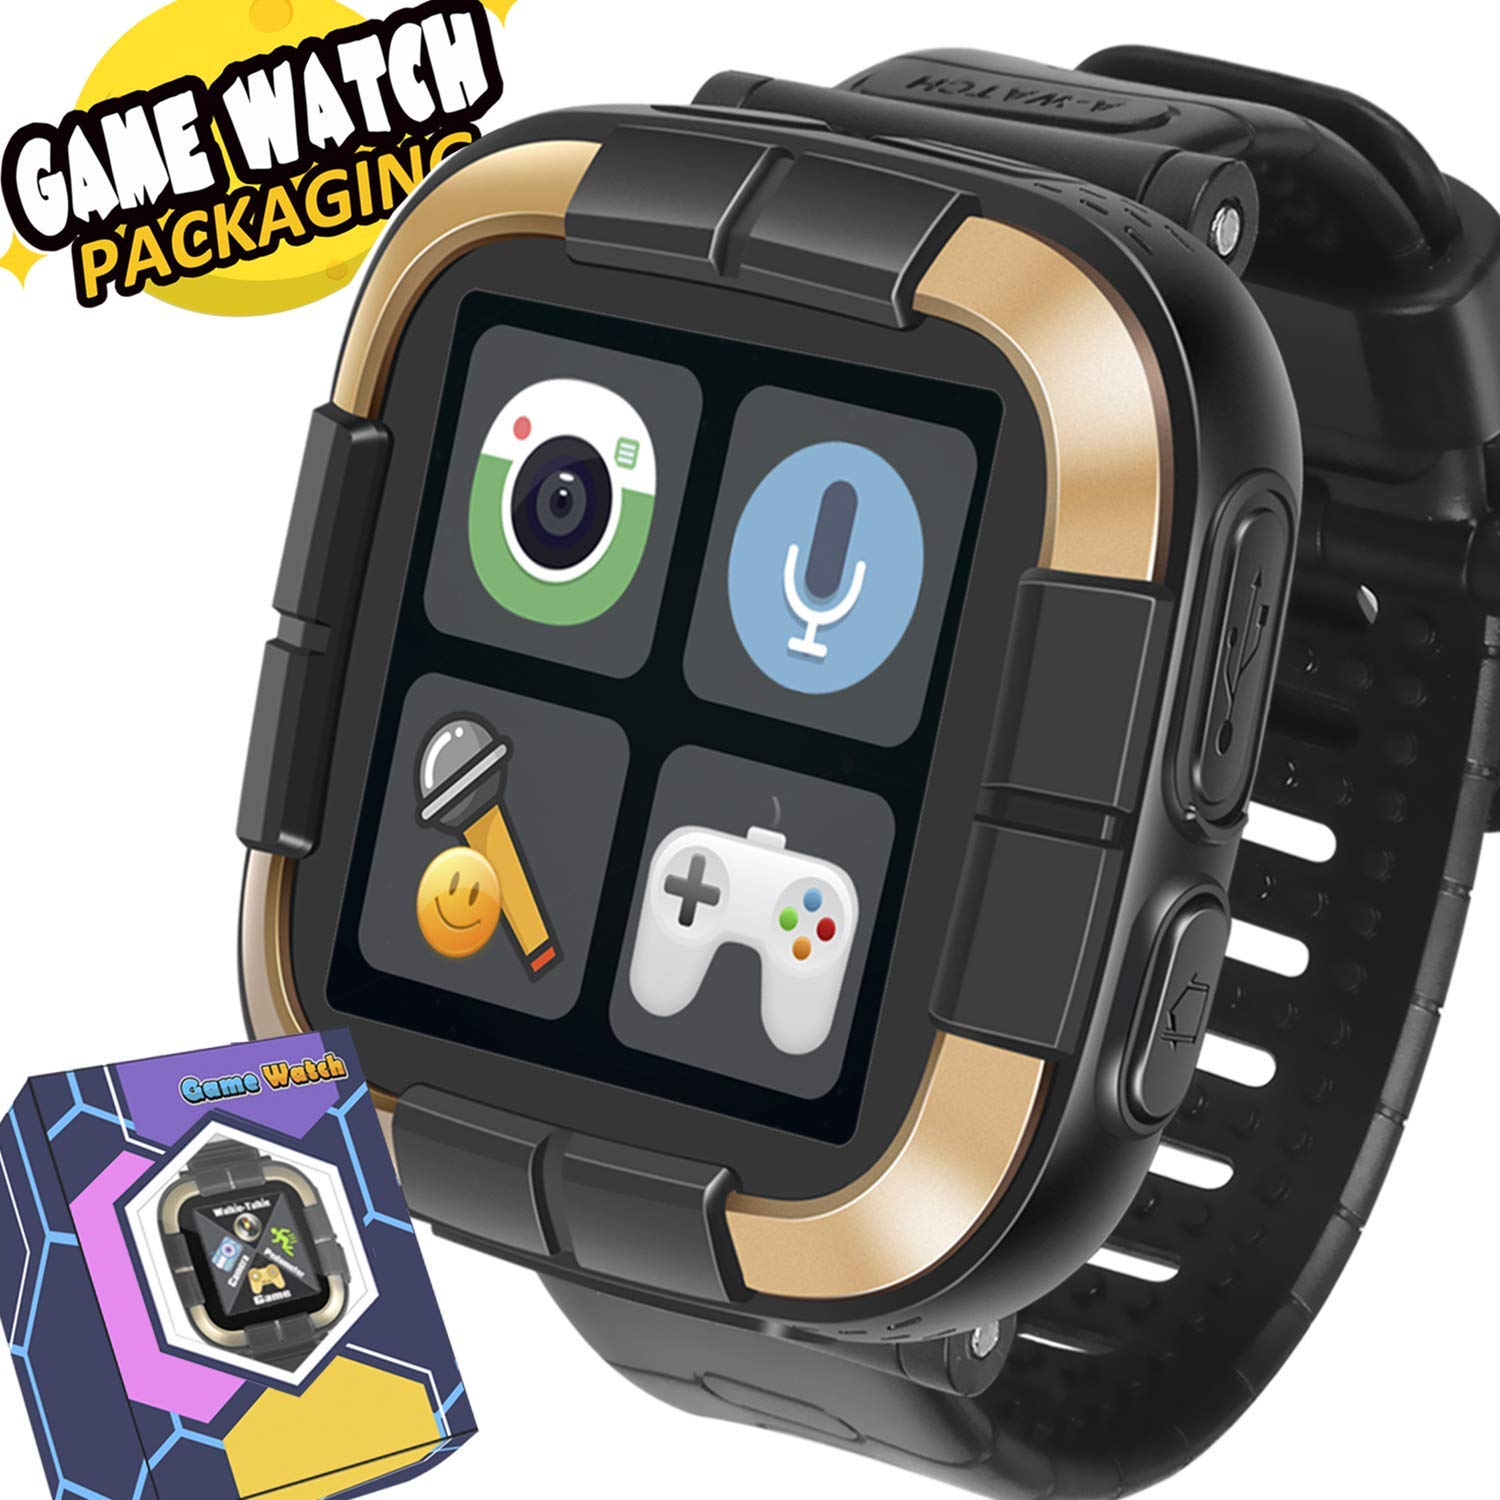 Game Smart Watch for Kids / Walkie Talkie Watches with Digital Camera Alarm Timer Stopwatch, Touchscreen Sports Kids Watch Music Pedometer, Wrist ...